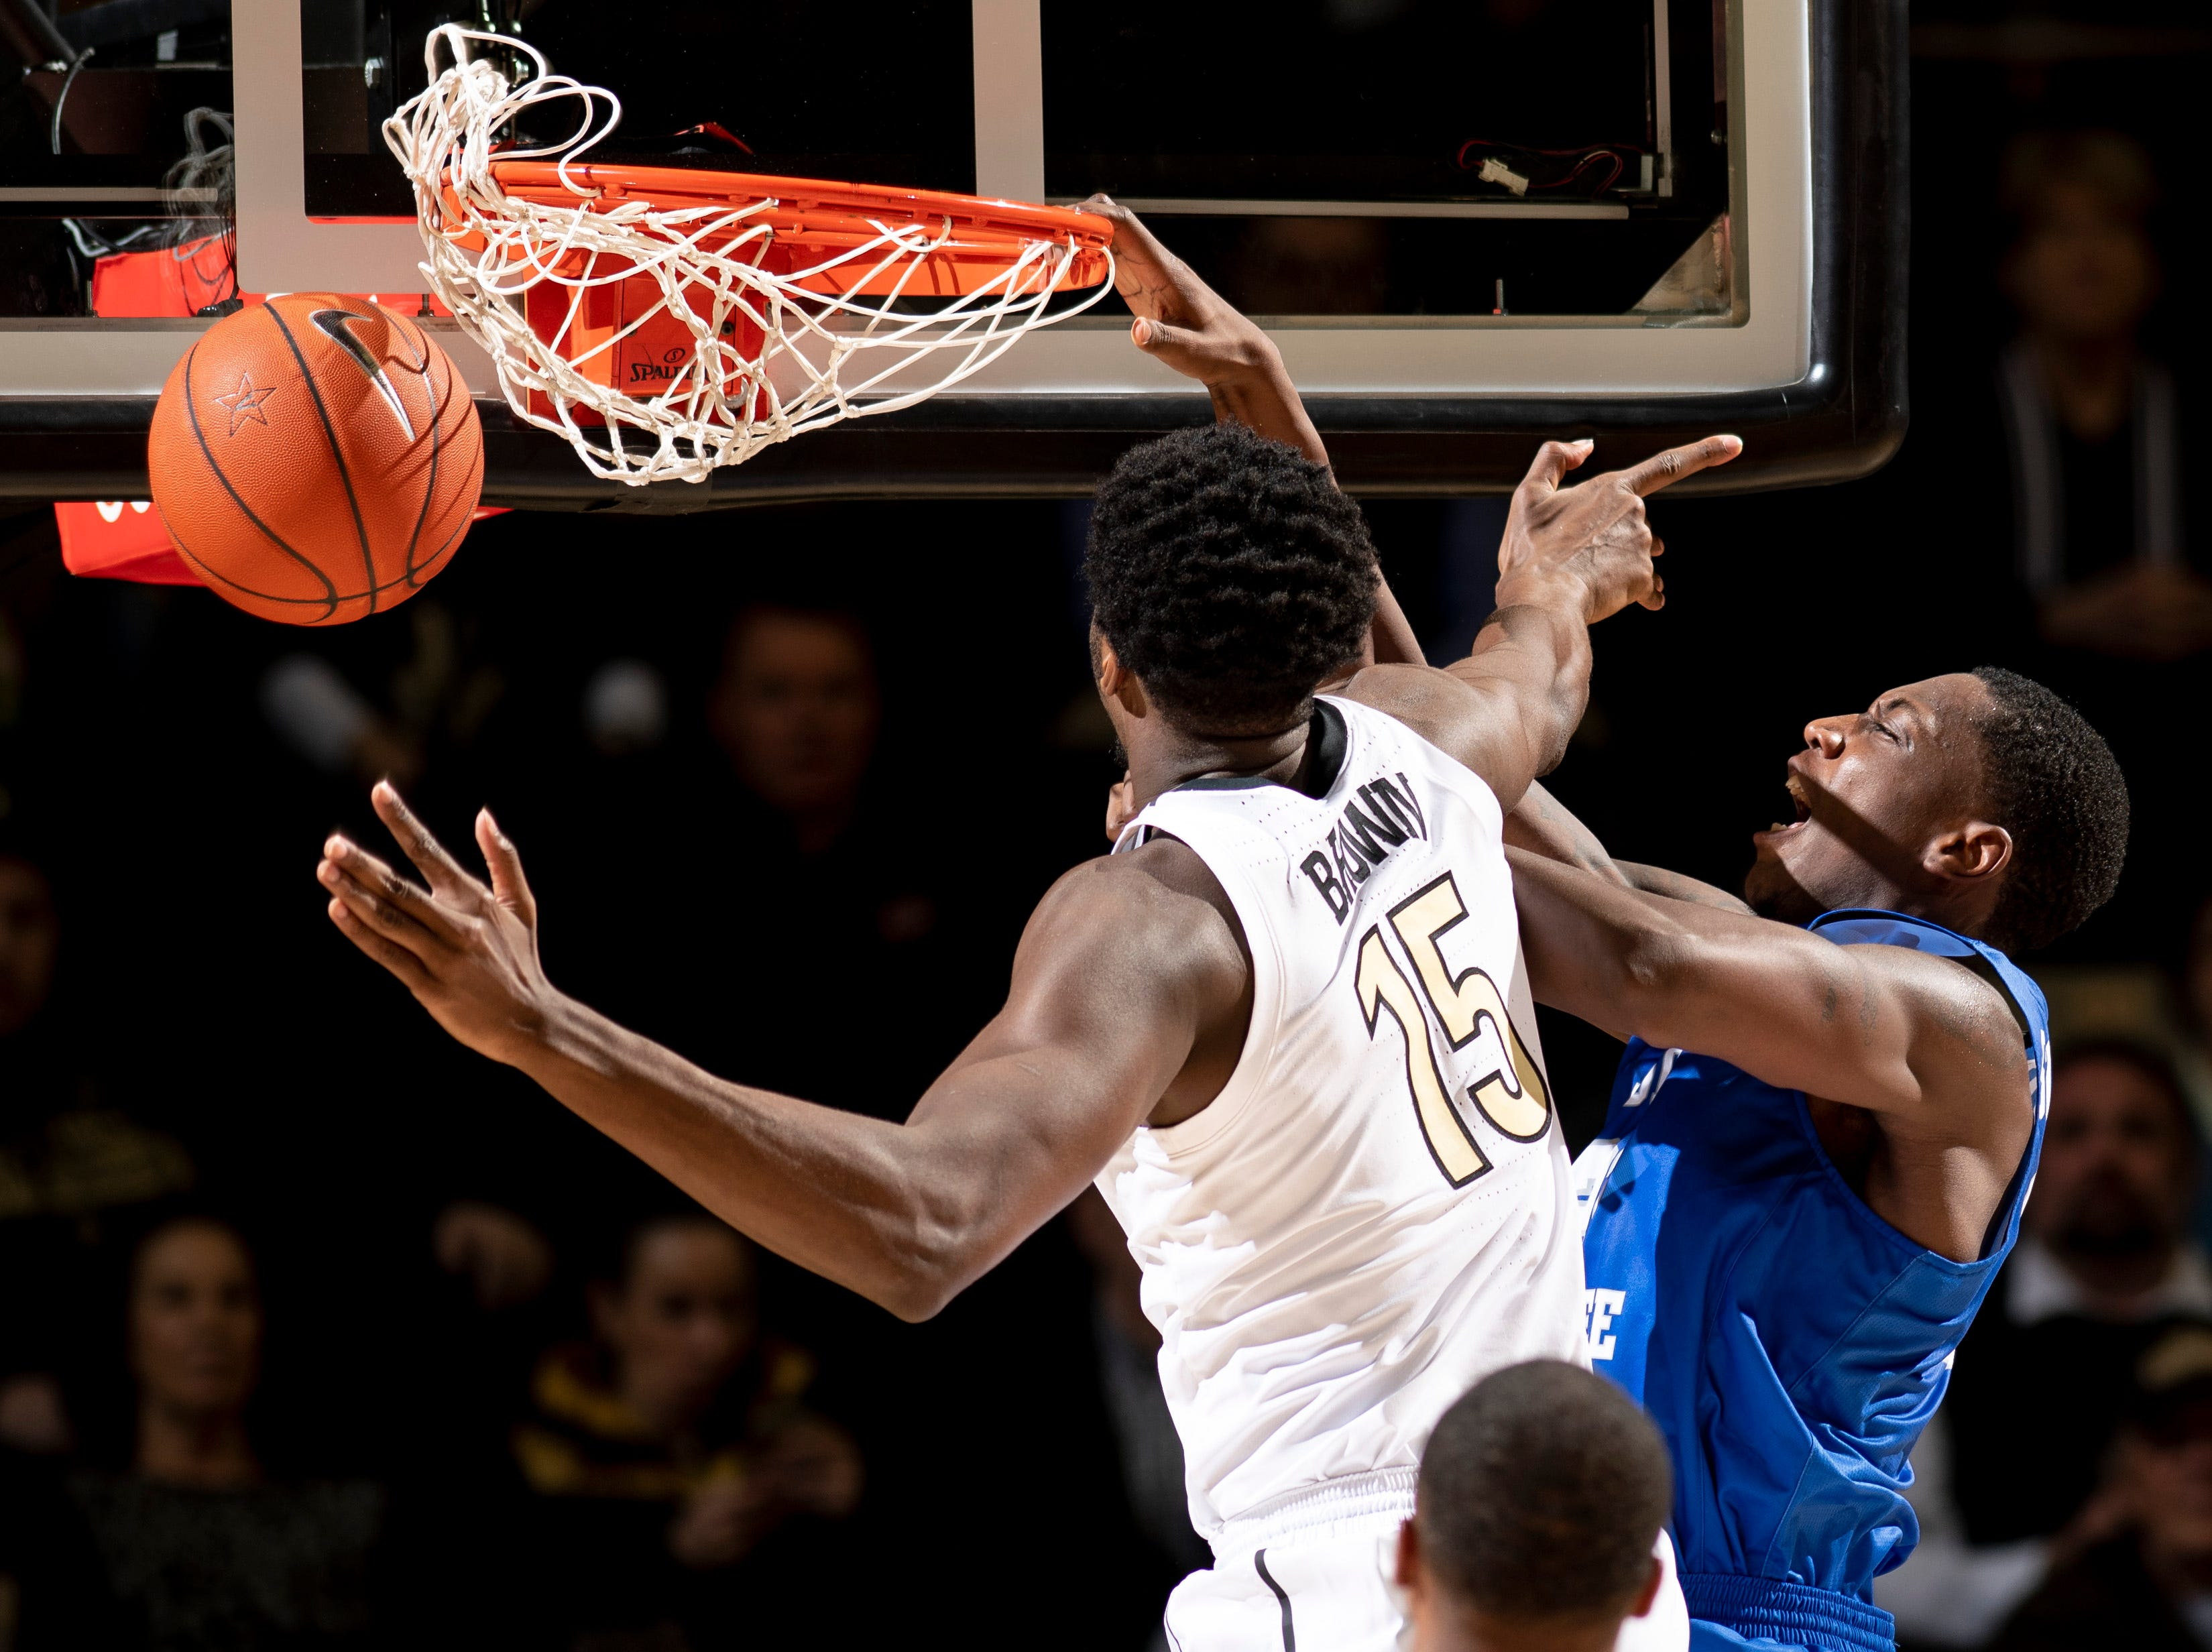 MTSU forward Reggie Scurry (22) dunks past Vanderbilt forward Clevon Brown (15) during the first half at Memorial Gym in Nashville, Tenn., Wednesday, Dec. 5, 2018.